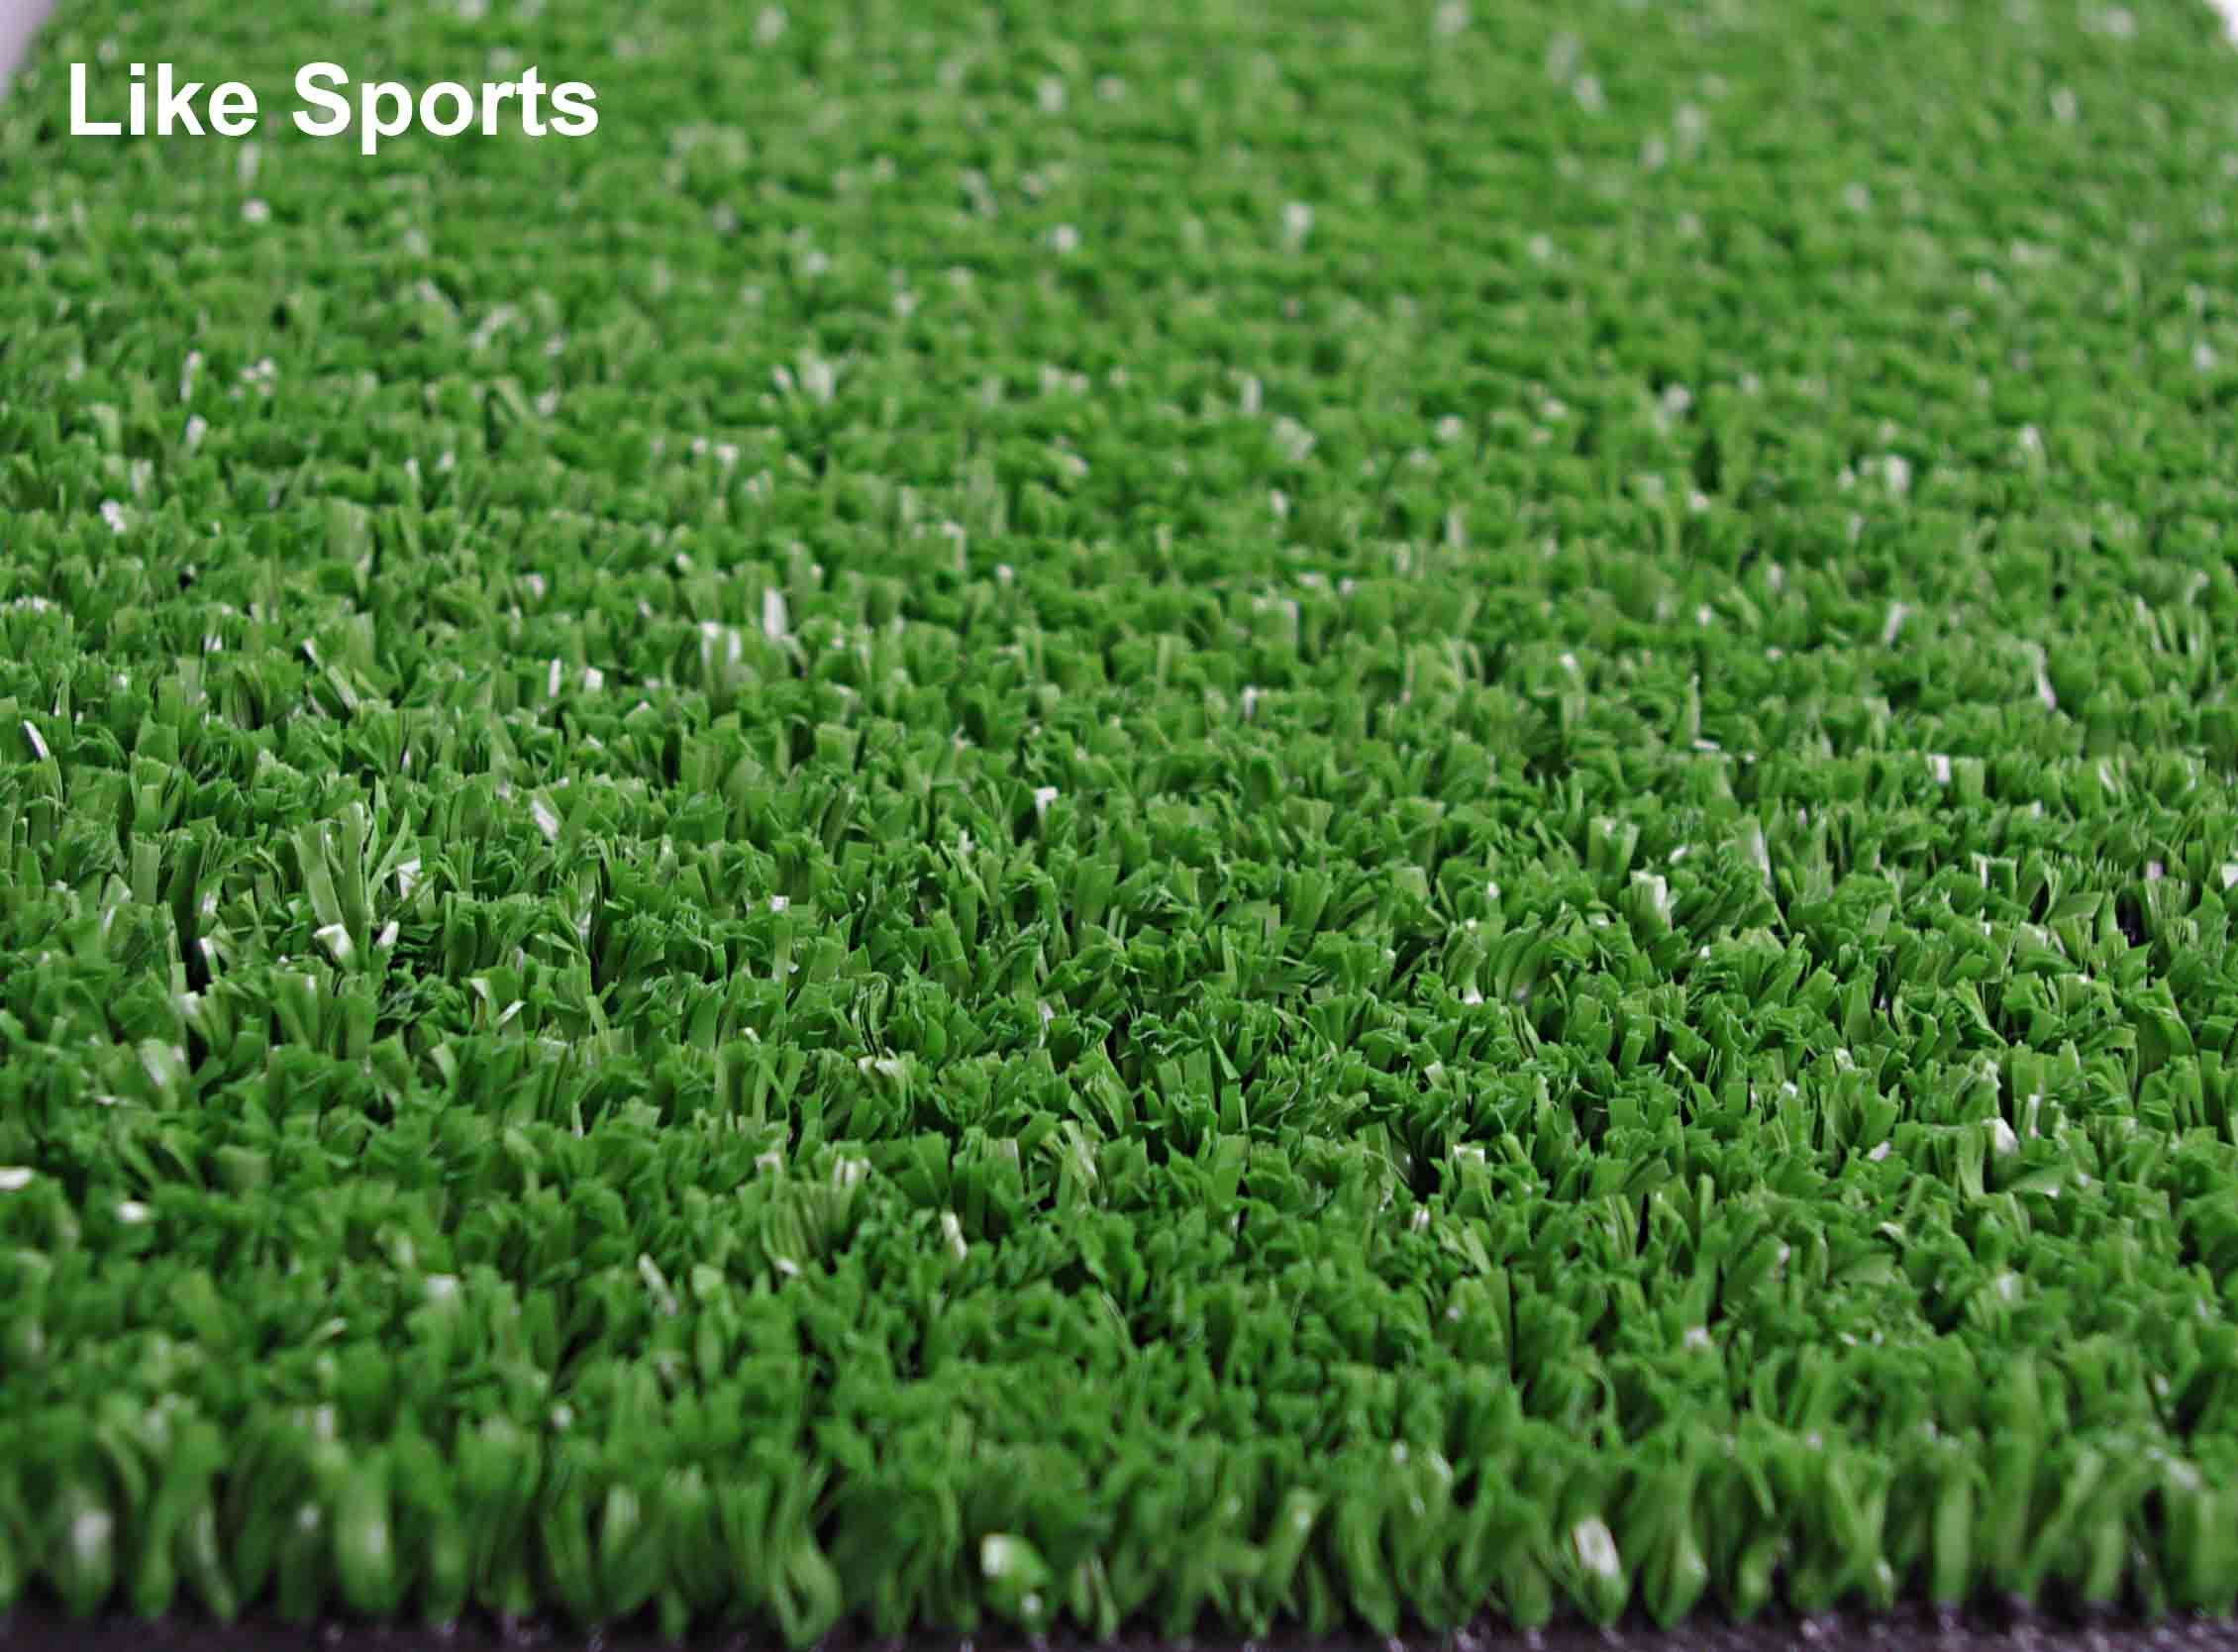 Fake Grass Prices Valuable Products Of Price Of Fake Grass In Joondalup